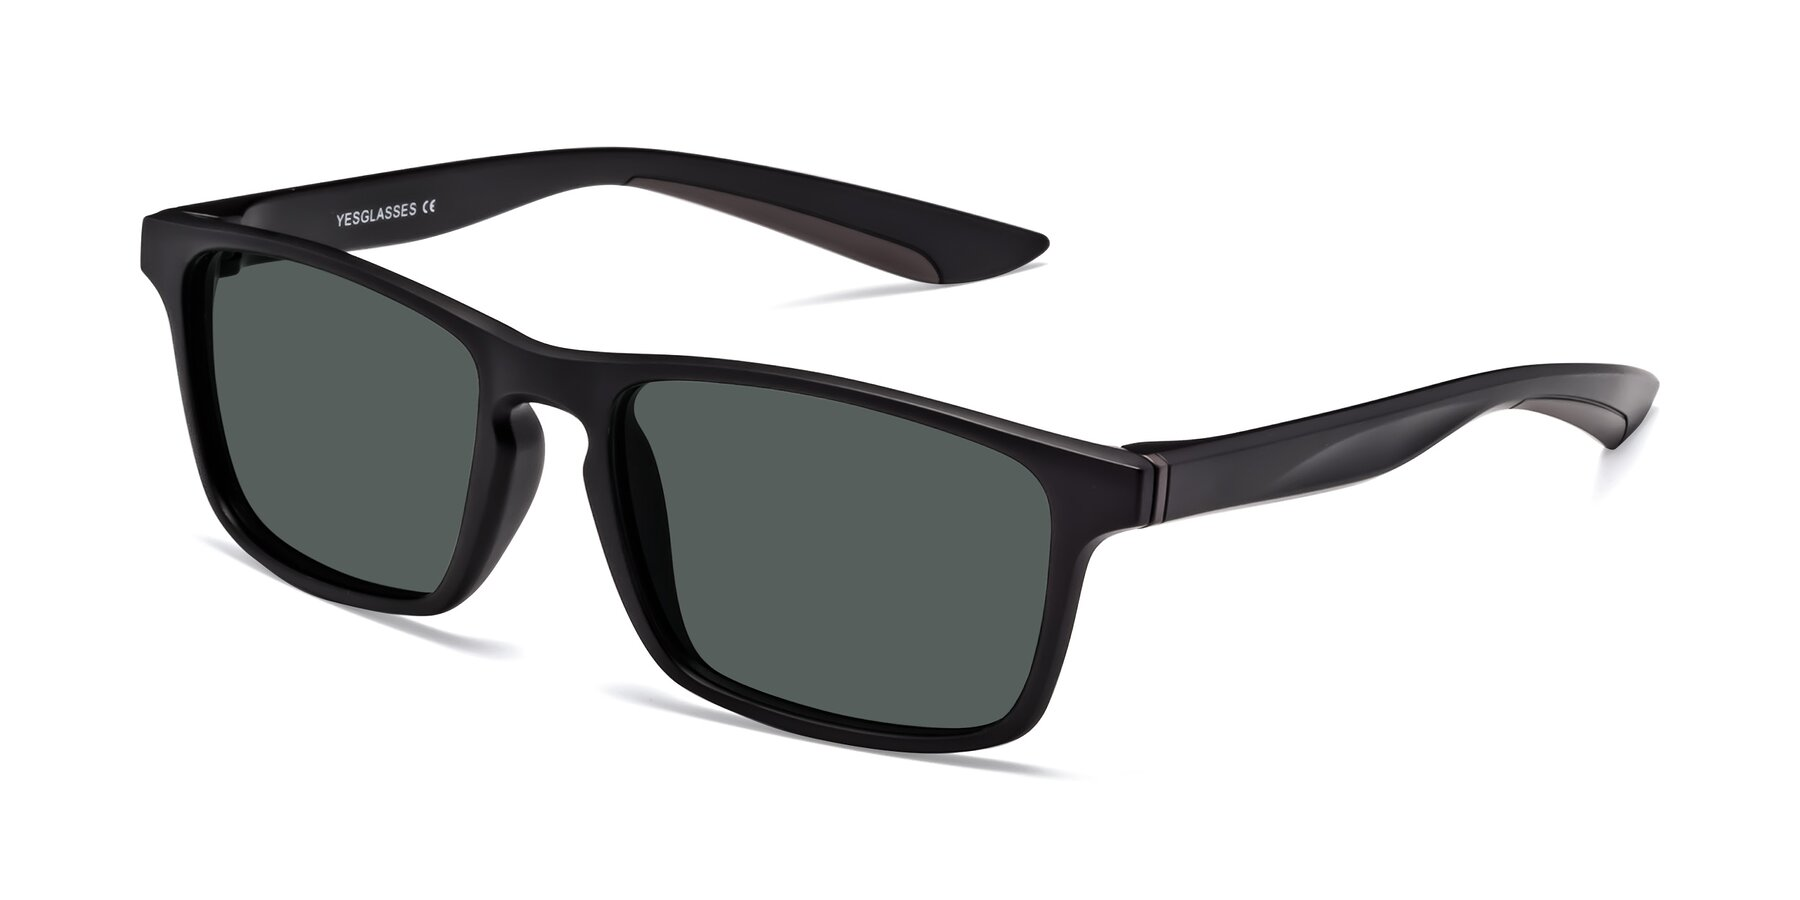 Angle of Passion in Matte Black-Coffee with Gray Polarized Lenses